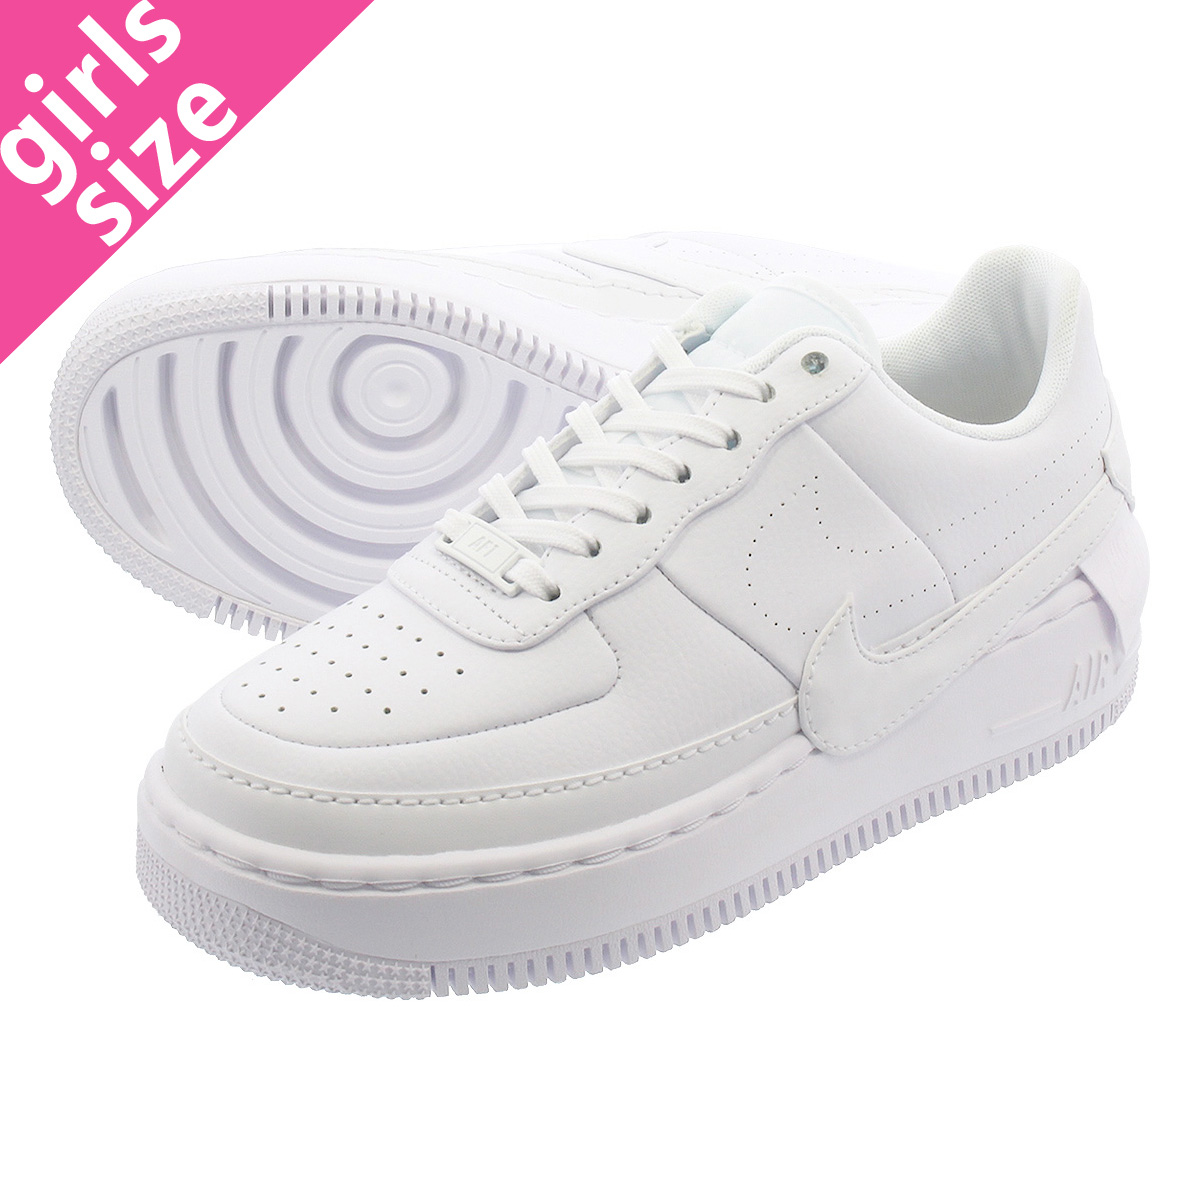 c4423f783814 NIKE WMNS AIR FORCE 1 JESTER XX Nike women air force 1 Jester XX  WHITE WHITE BLACK ao1220-101